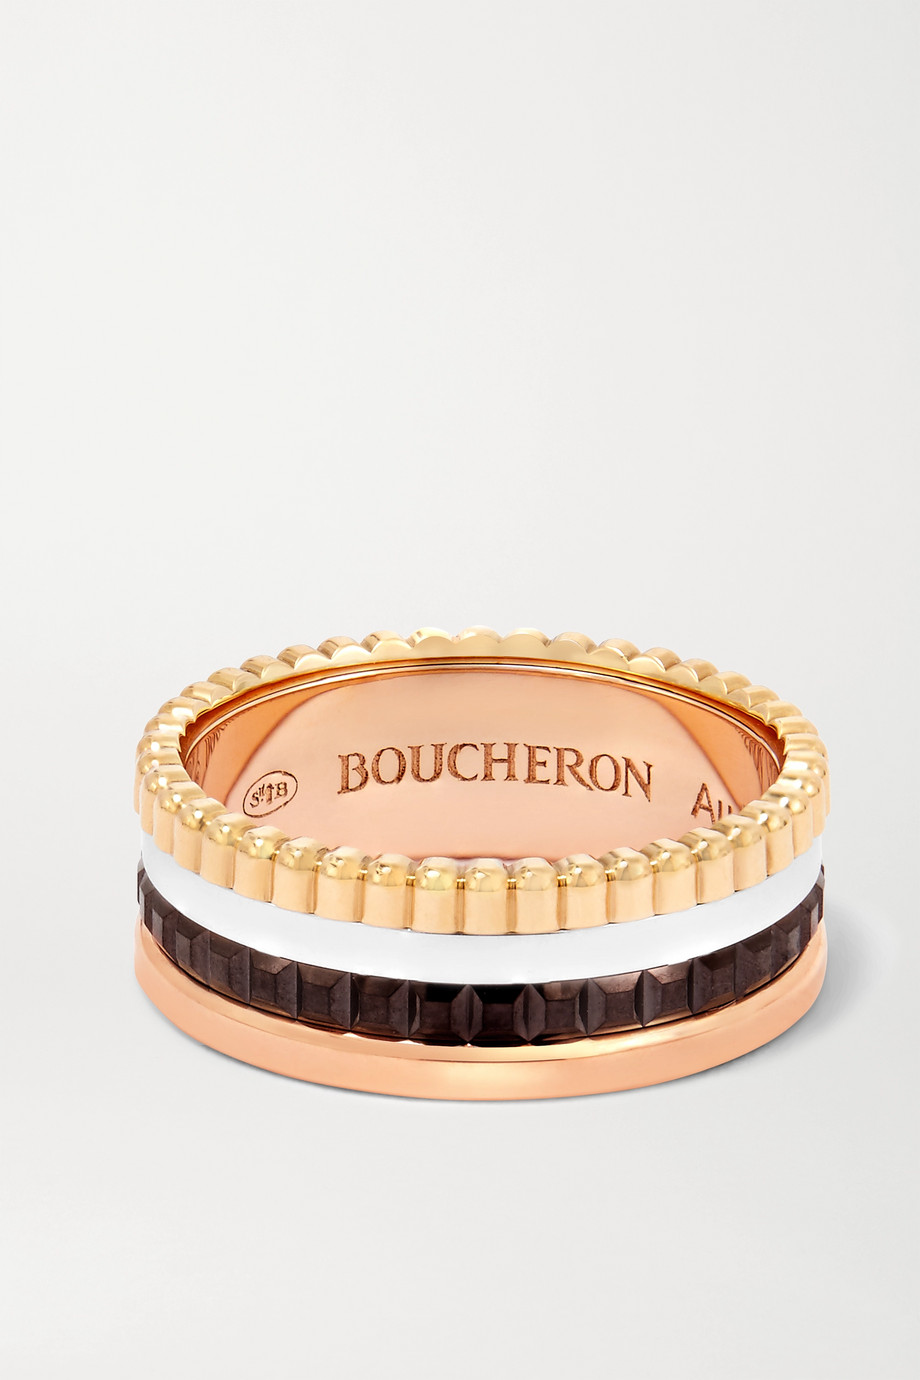 BOUCHERON Quatre Classique Small 18-karat yellow, white and rose gold and PVD ring